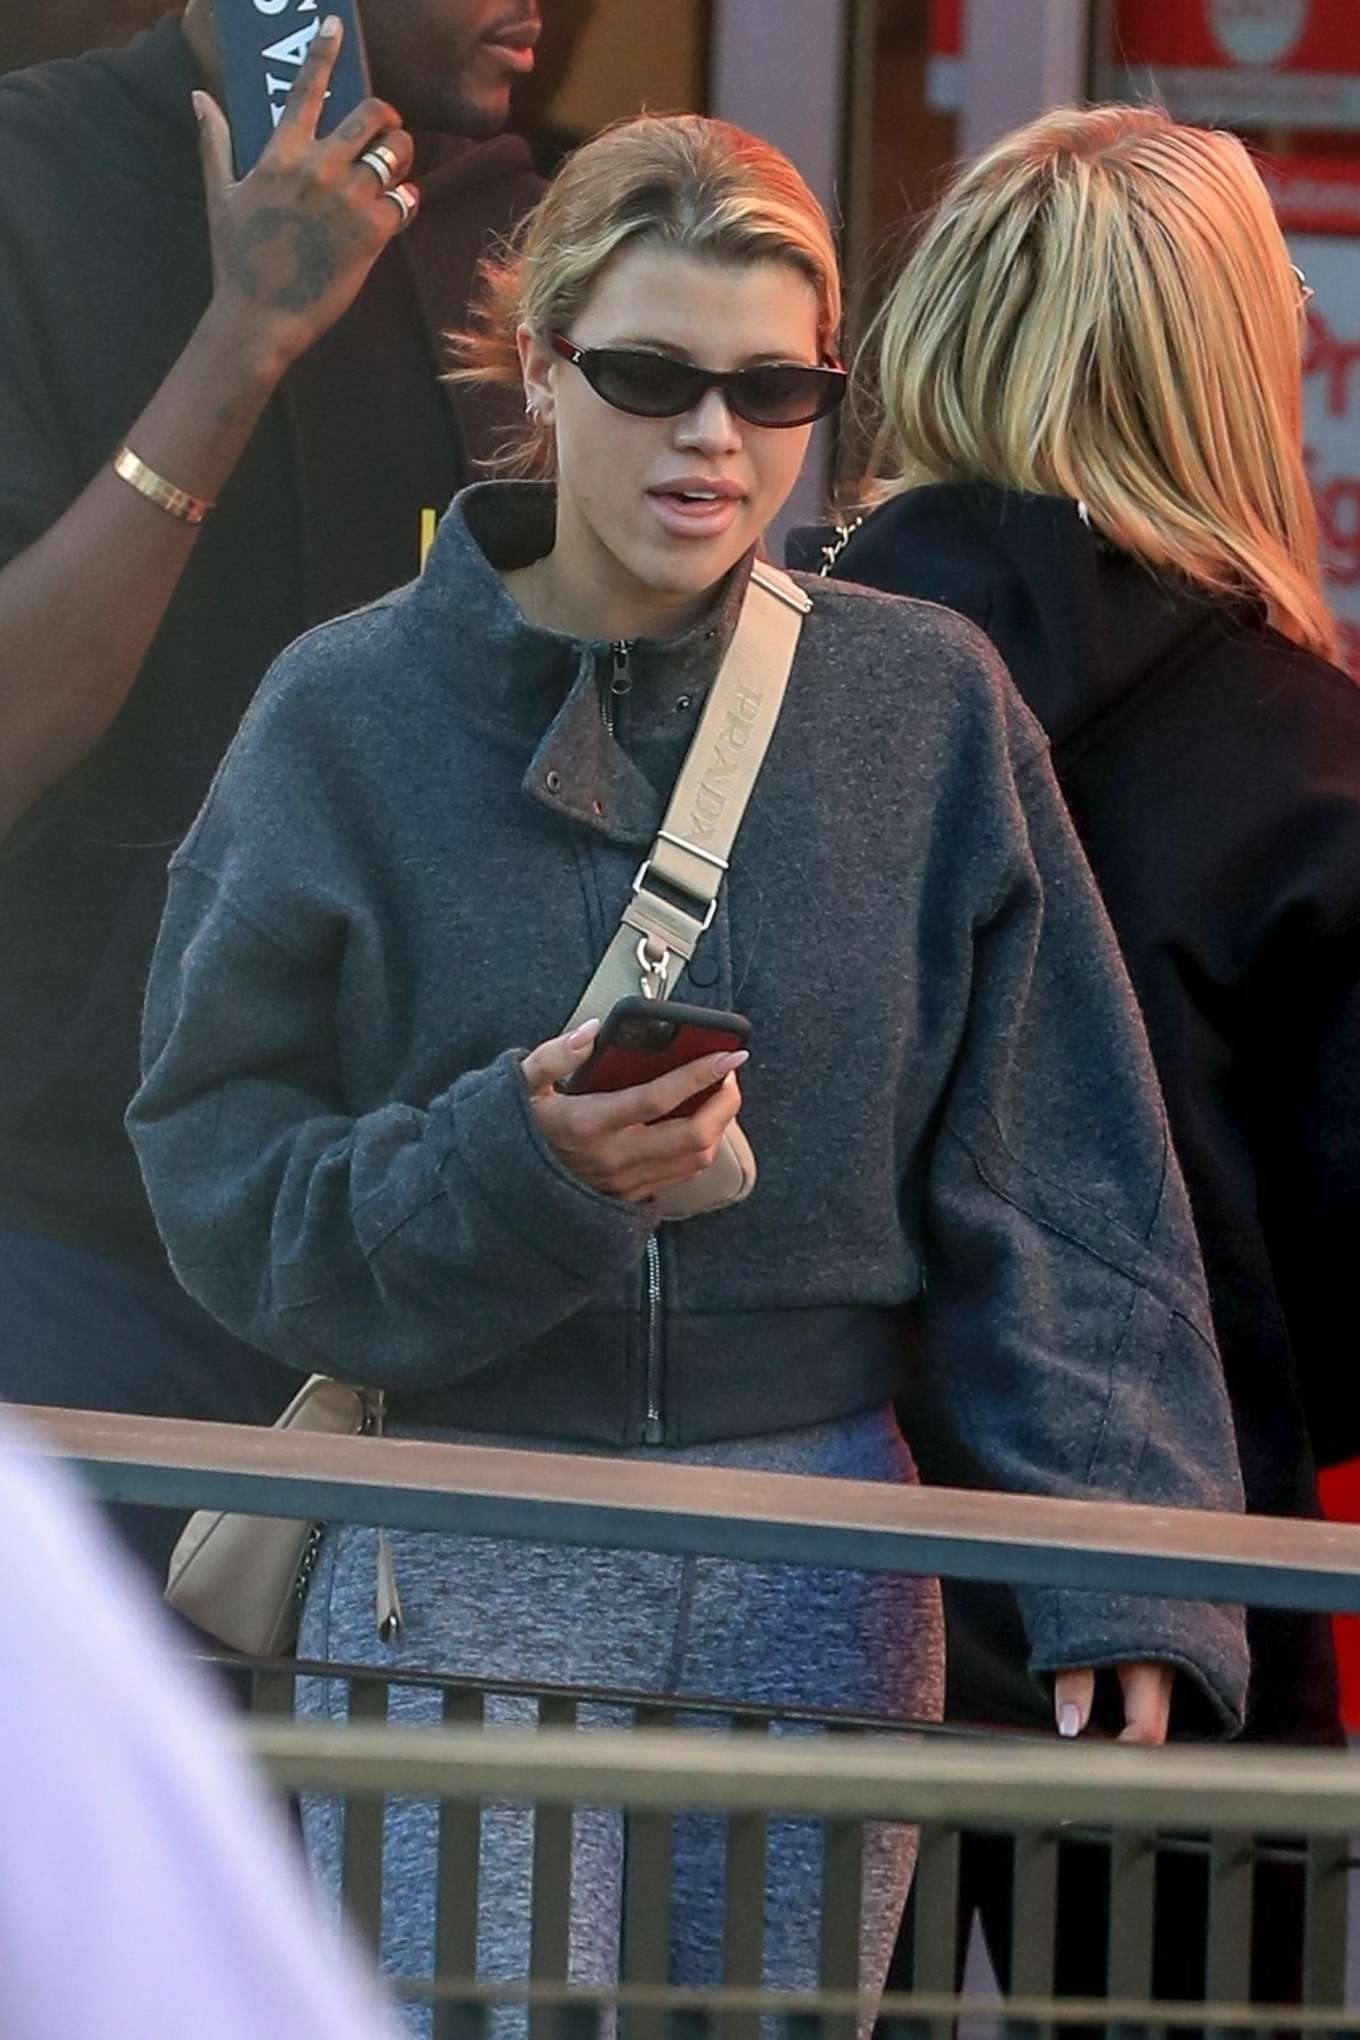 Sofia Richie - Shopping at Target in West Hollywood